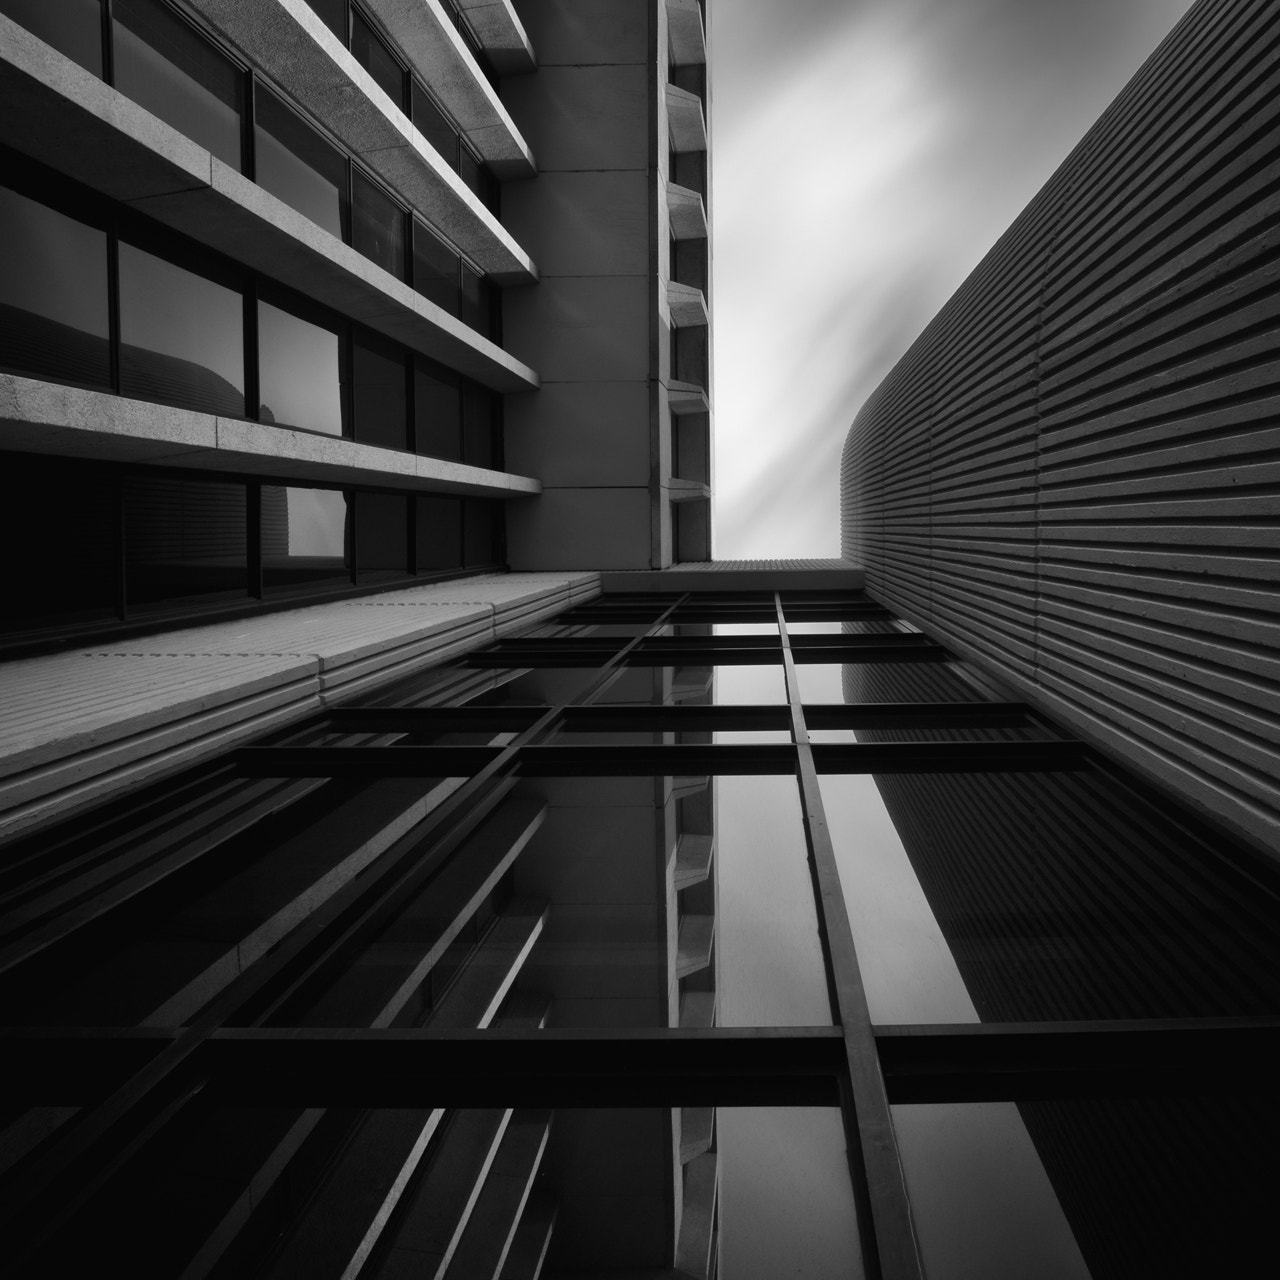 Photograph intelligent life forms by Brian Day on 500px